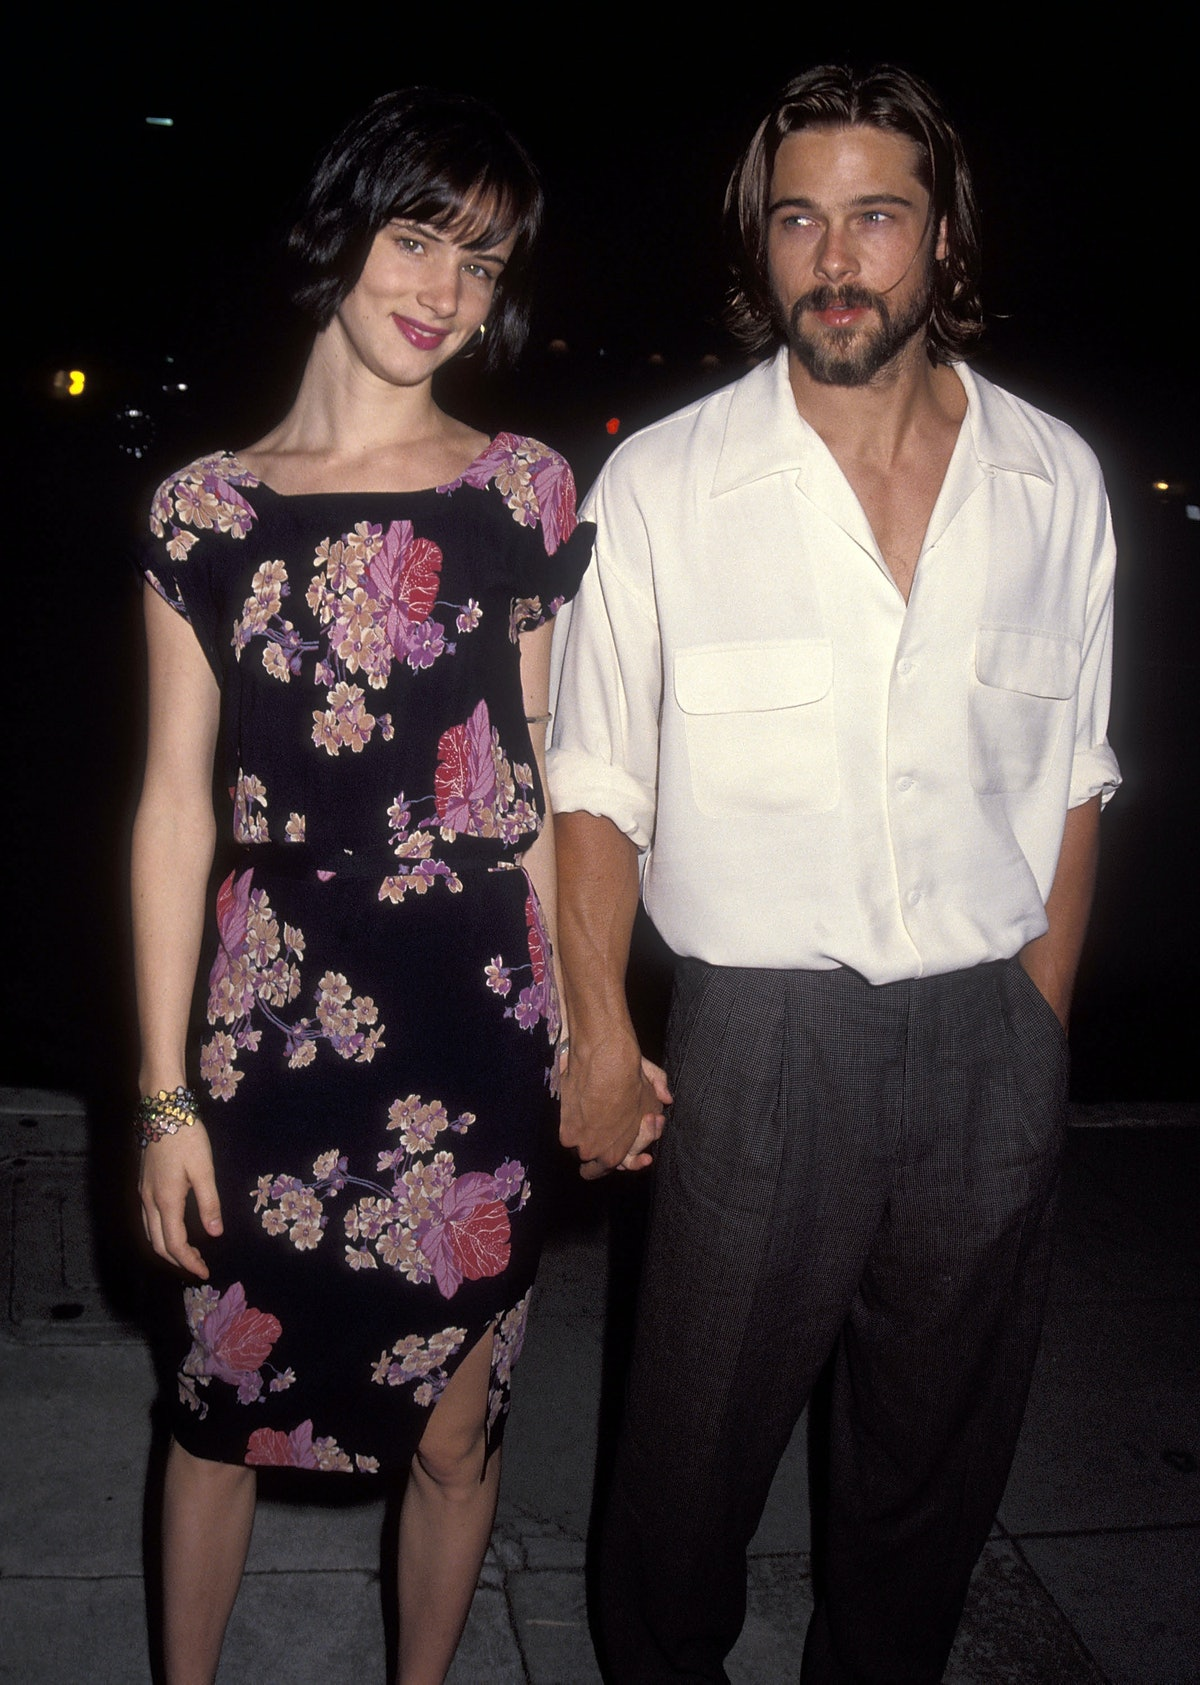 Juliette in a floral dress, Brad with long hair and beard